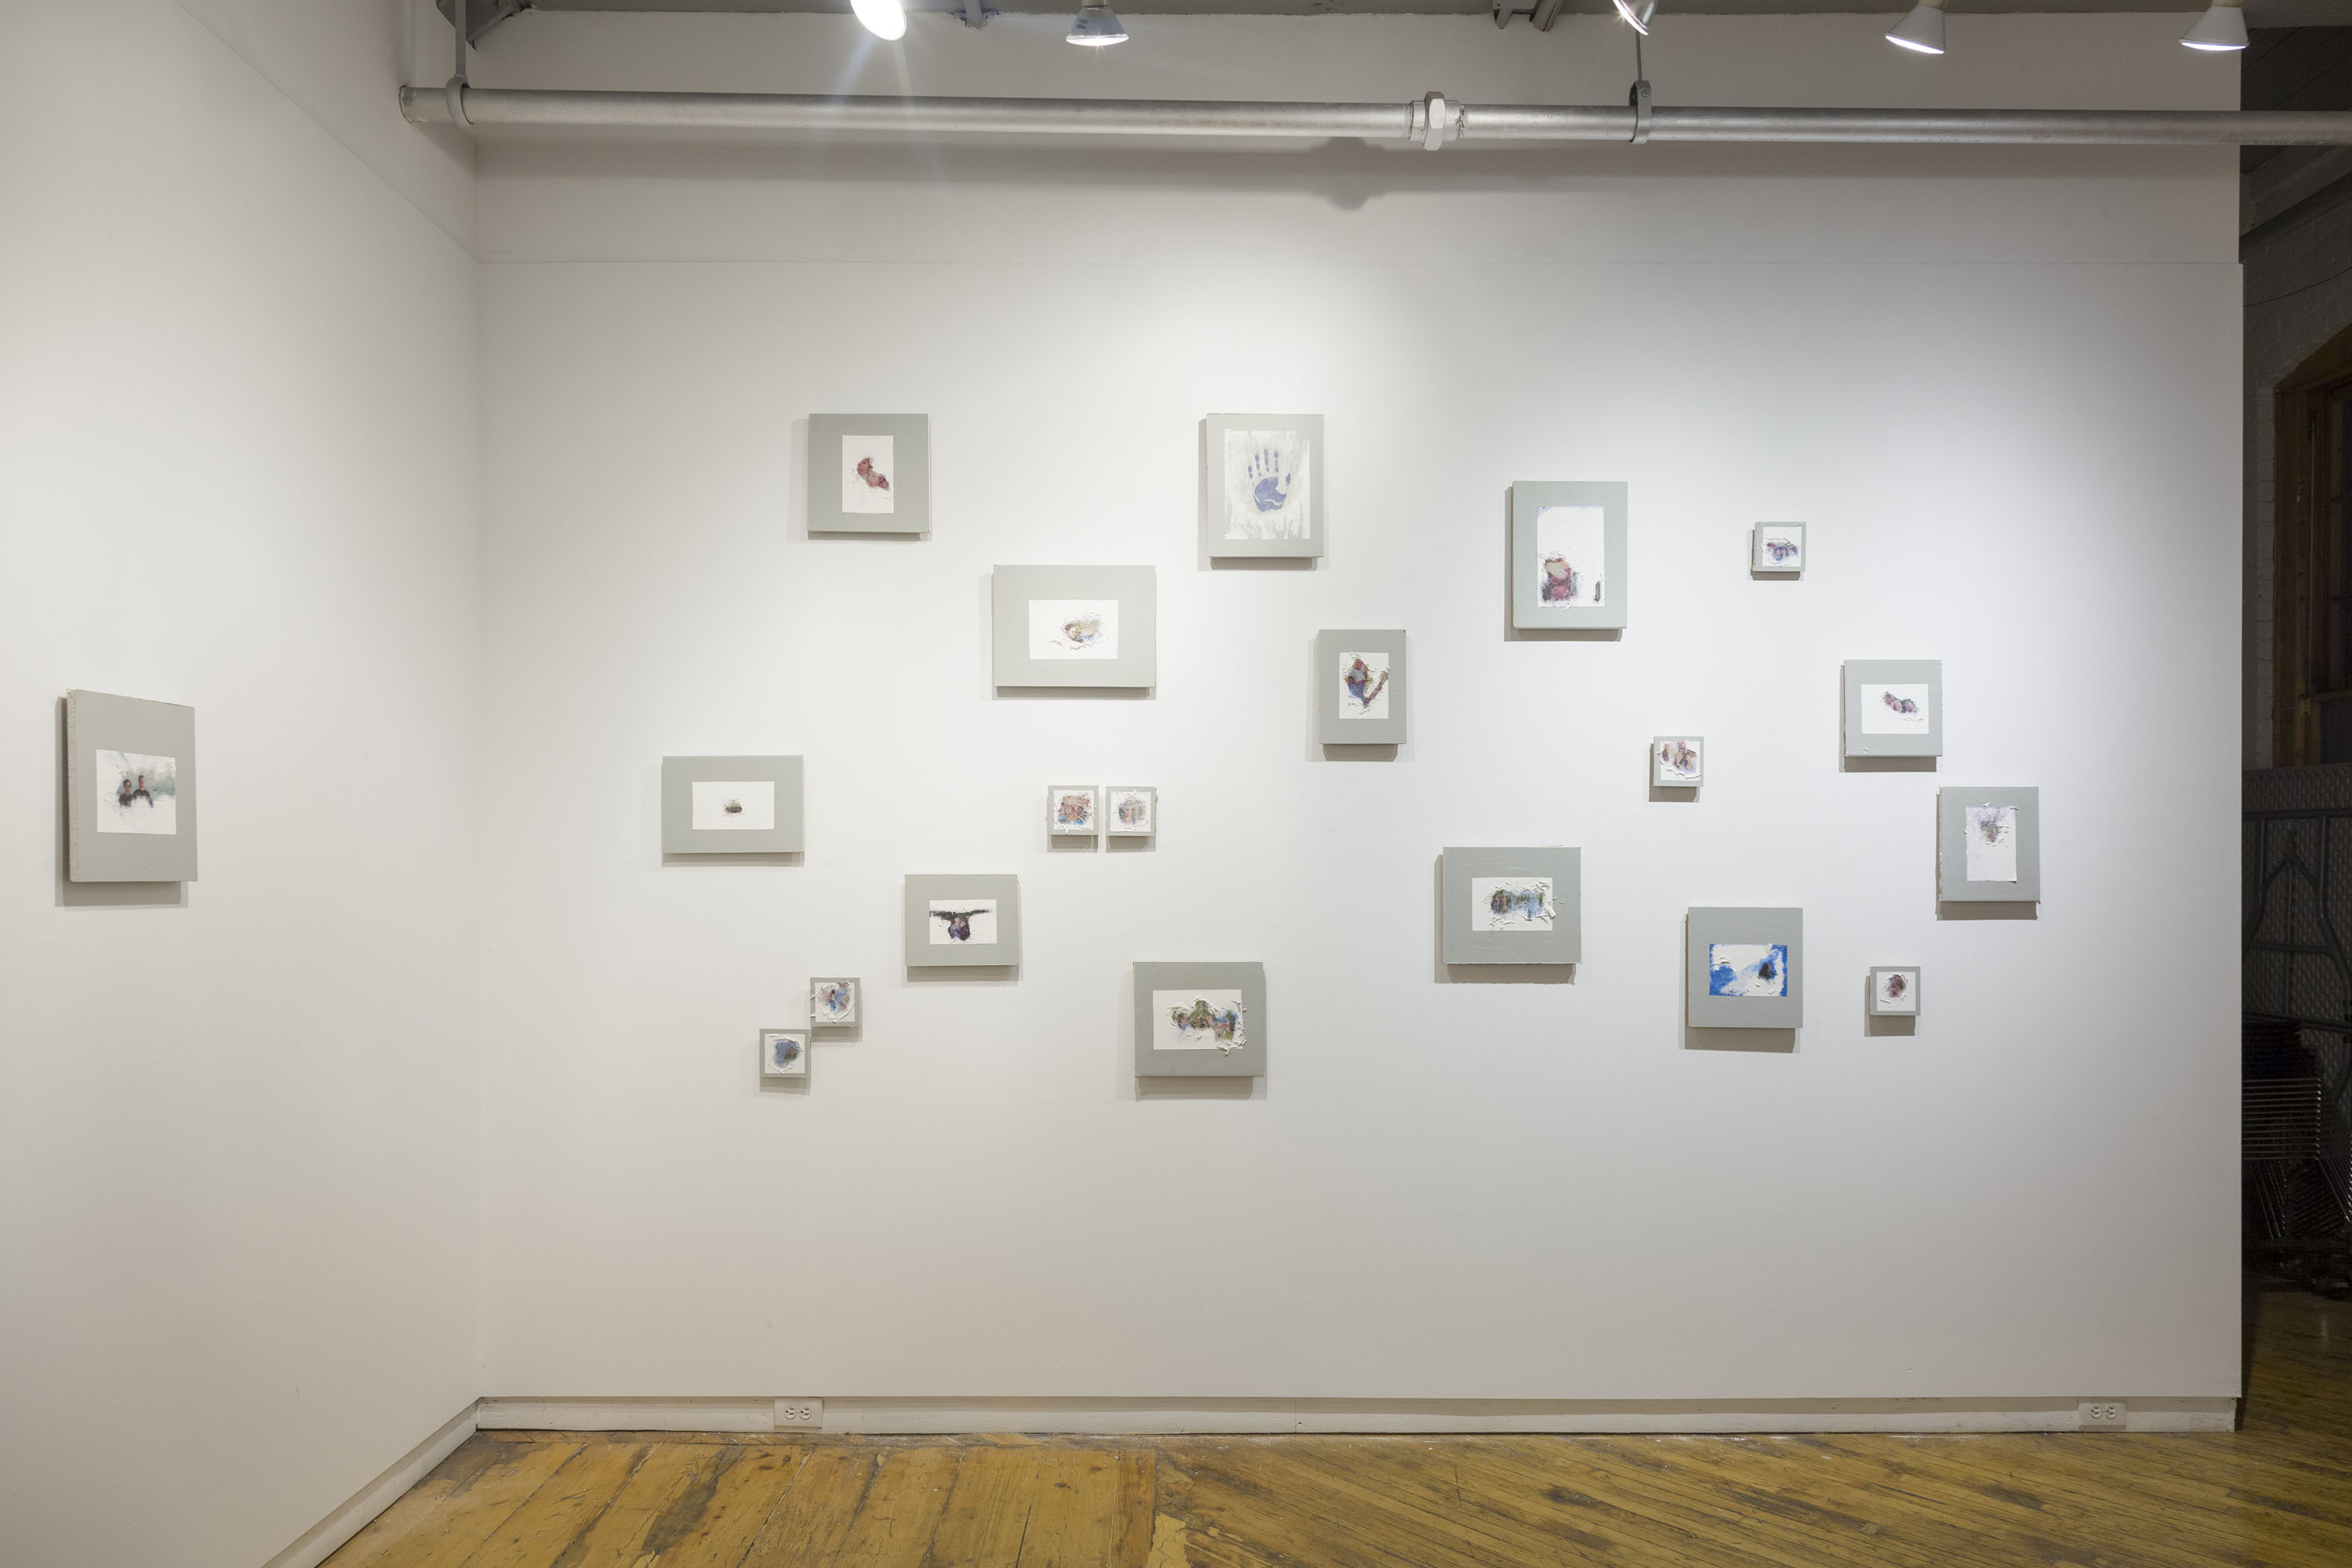 Exhibition documentation in members gallery